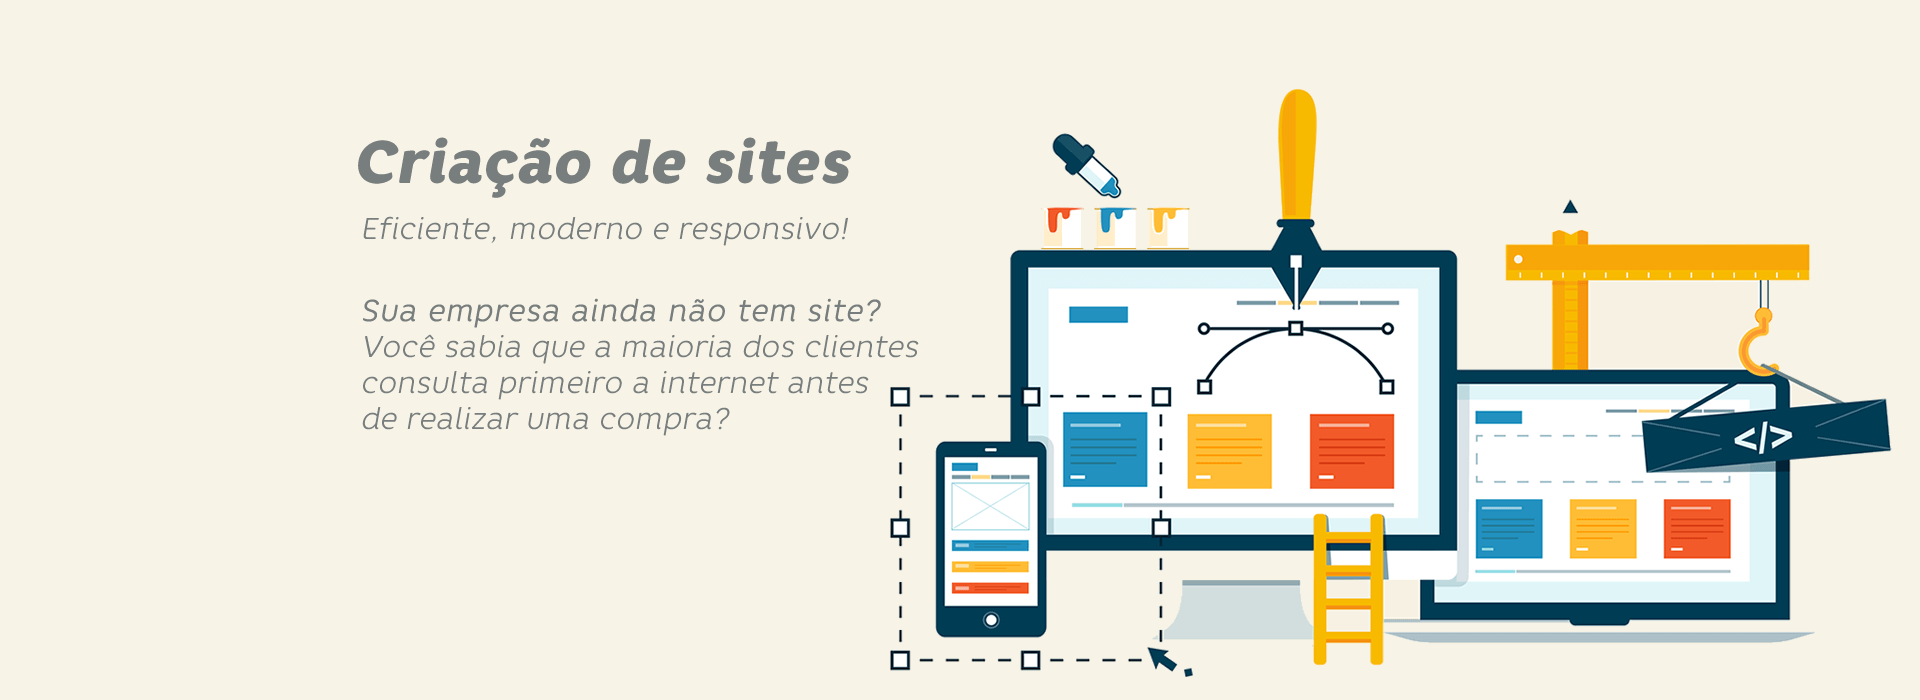 Sites - Sizy.com.br